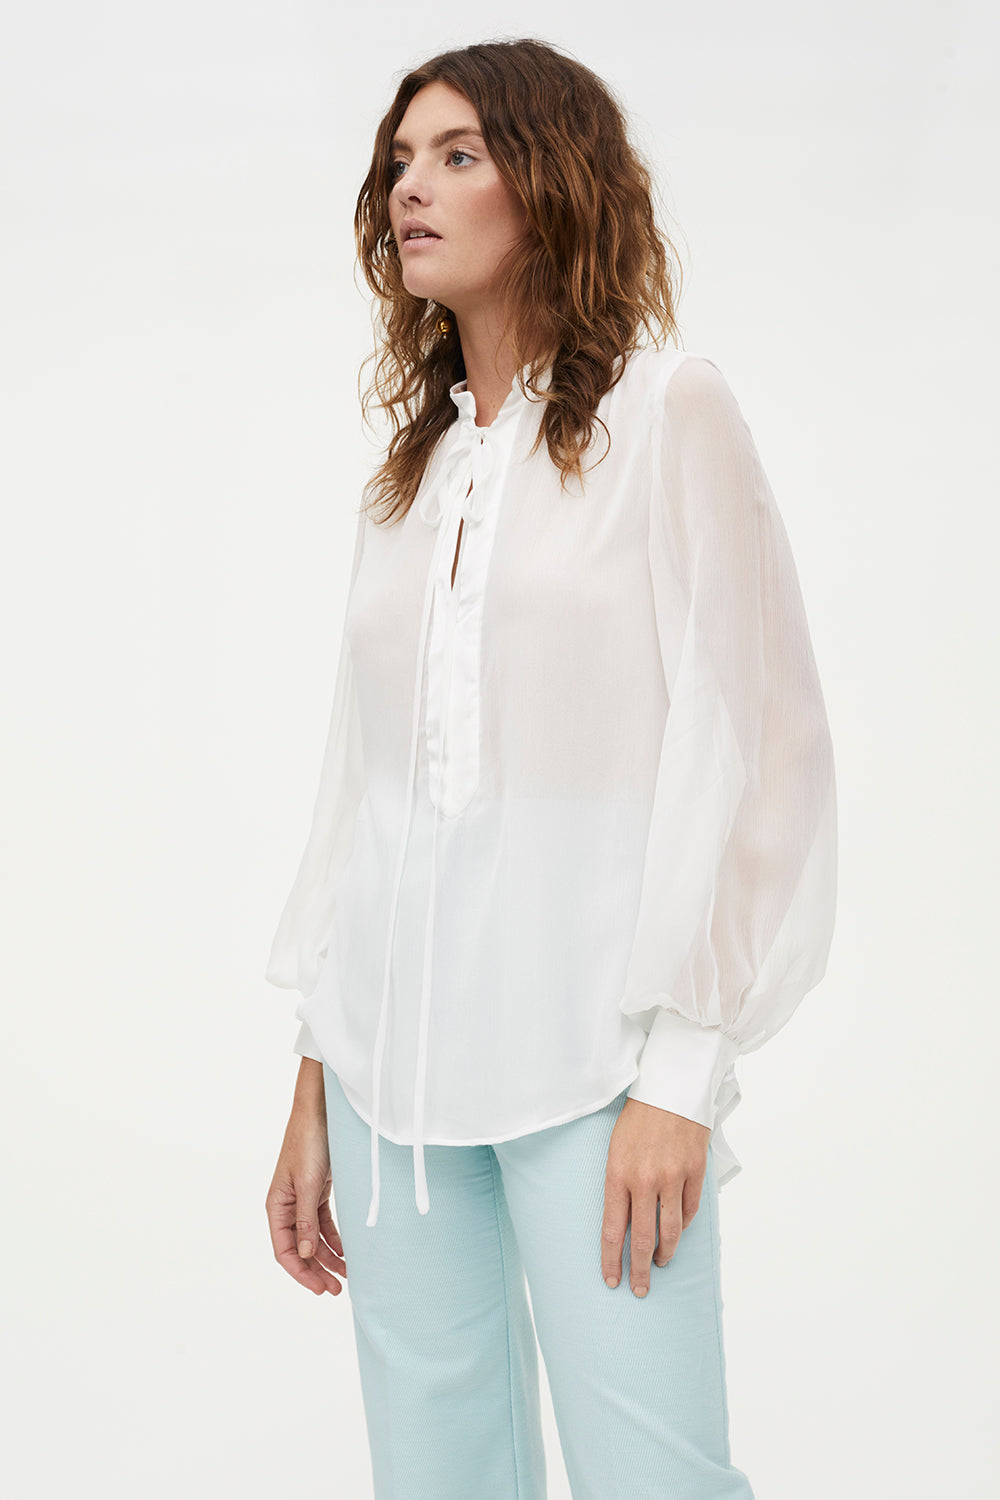 WHITE LIGHT BLOUSE